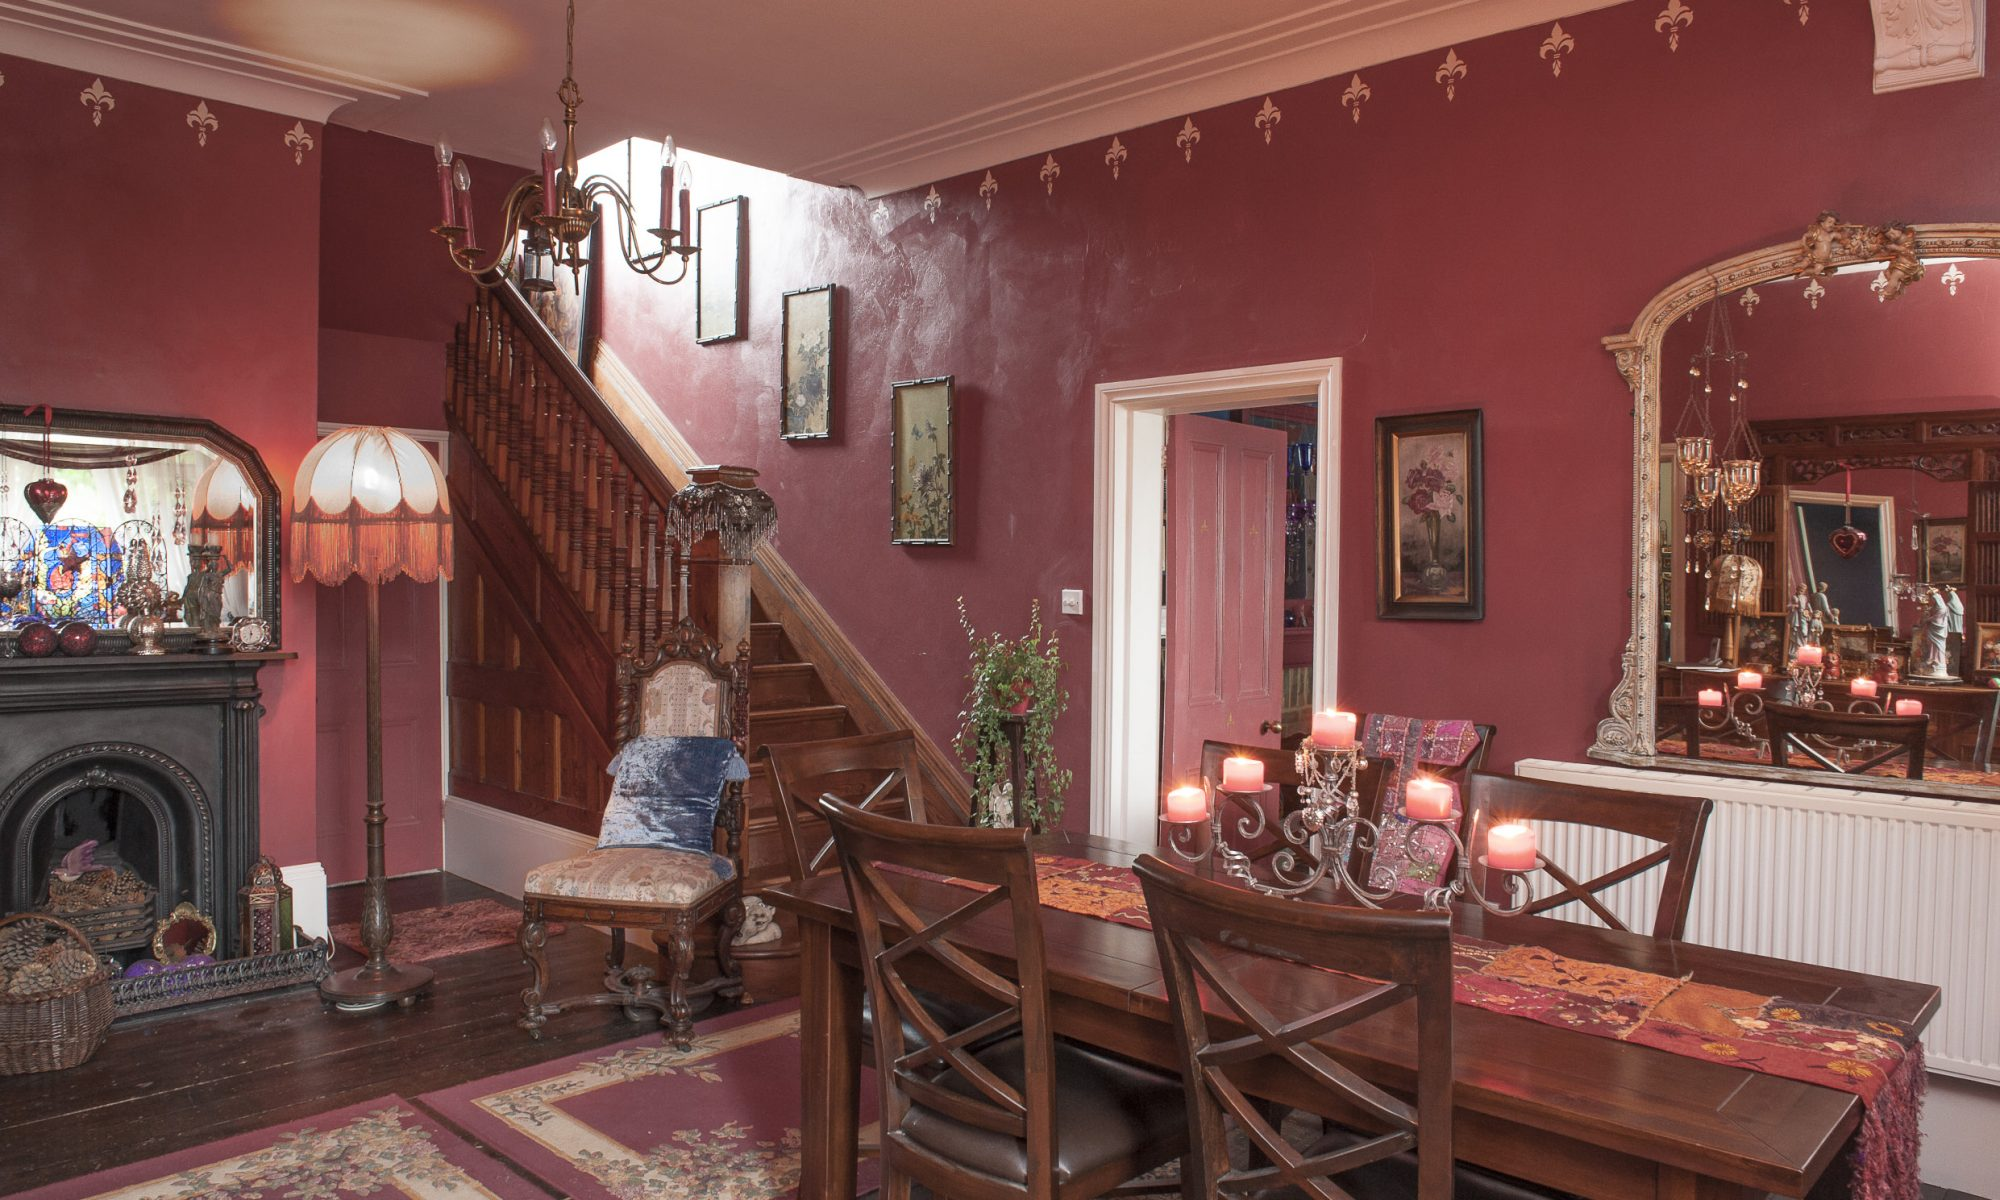 Carmel and Mick have transformed their seaside home into a flamboyant and creative space perfect for their family to pursue their musical talents...